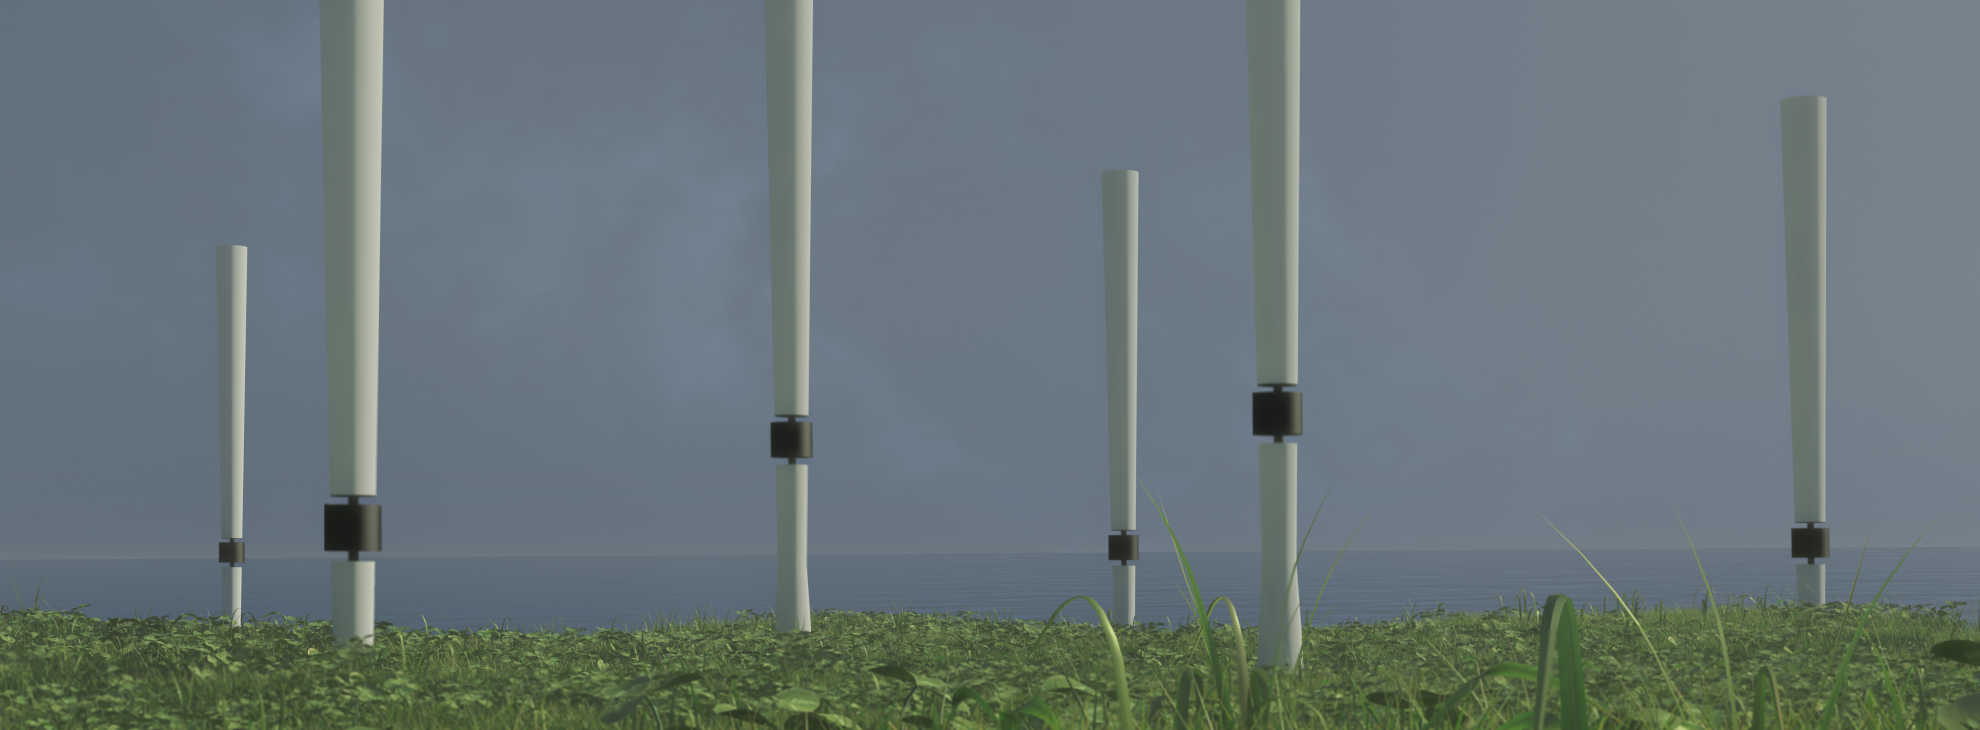 Could Bladeless Wind Turbines Make Wind Energy More Environmentally Friendly?